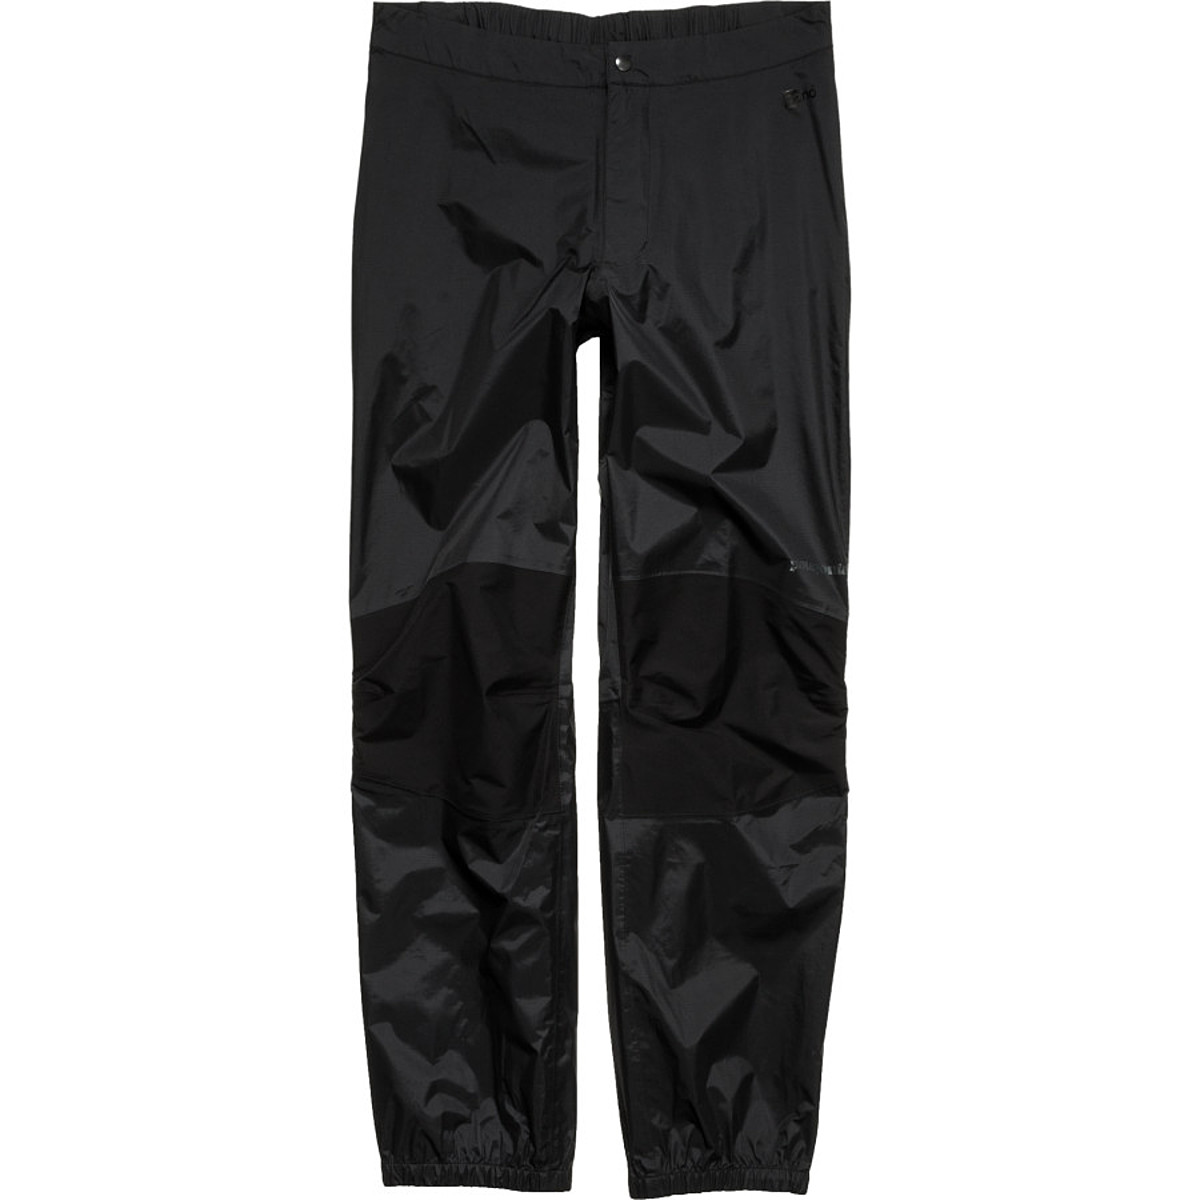 Patagonia Torrentshell Stretch Pants